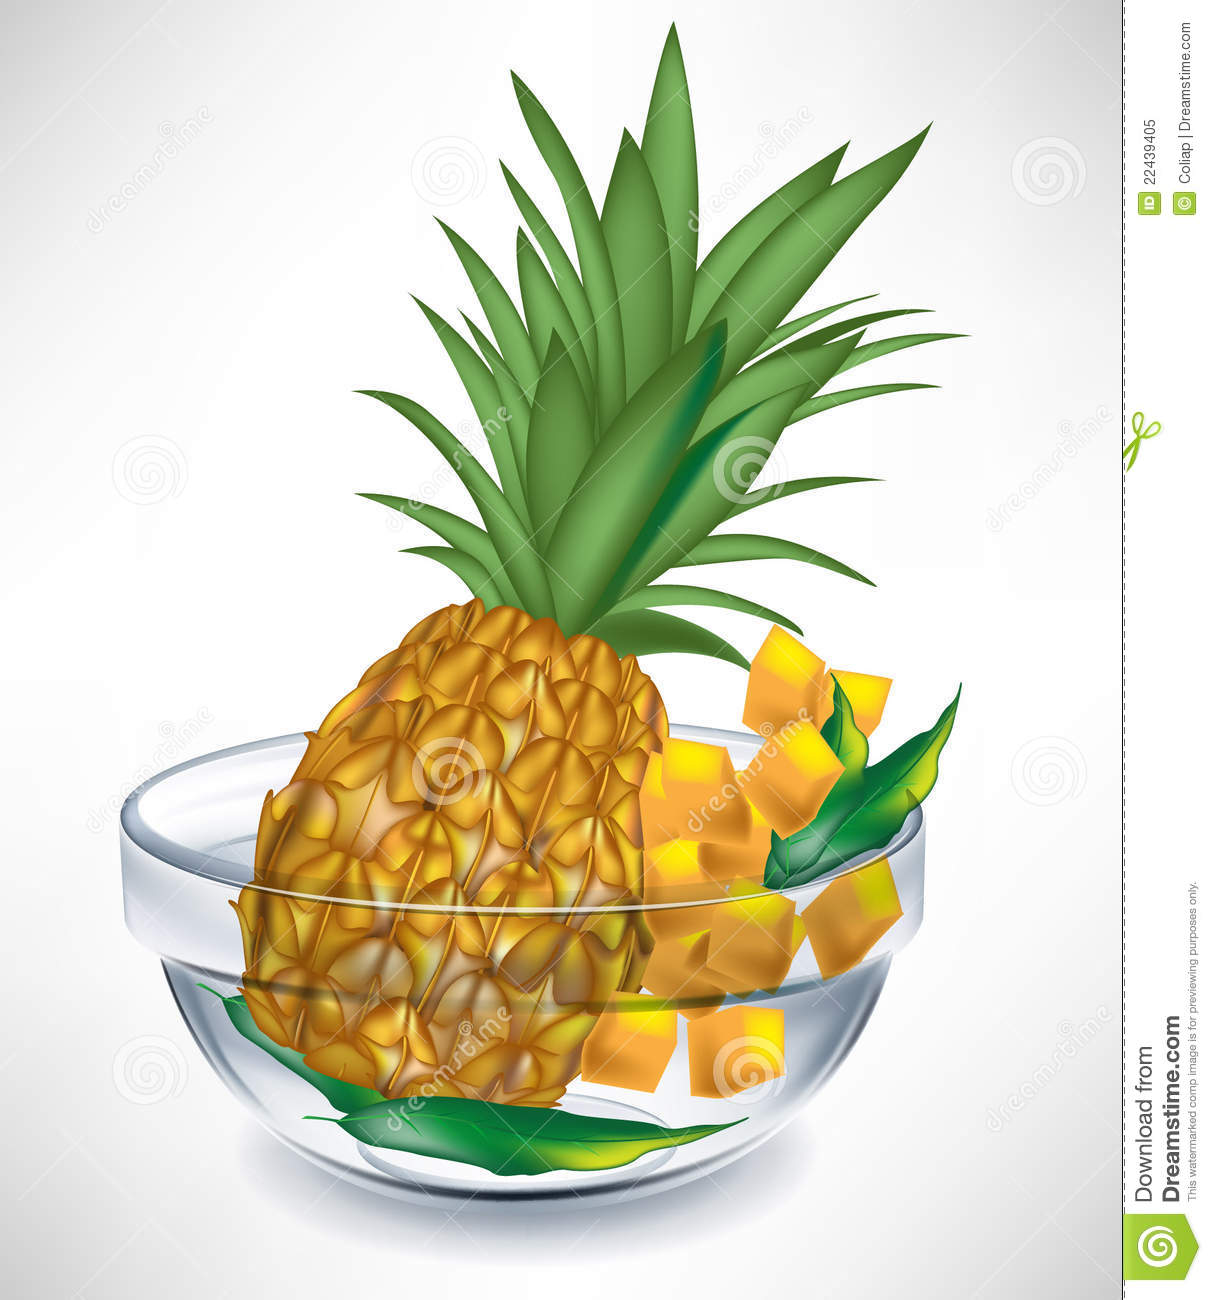 Pineapple Fruit And Slices In Bowl Royalty Free Stock Photo - Image ...